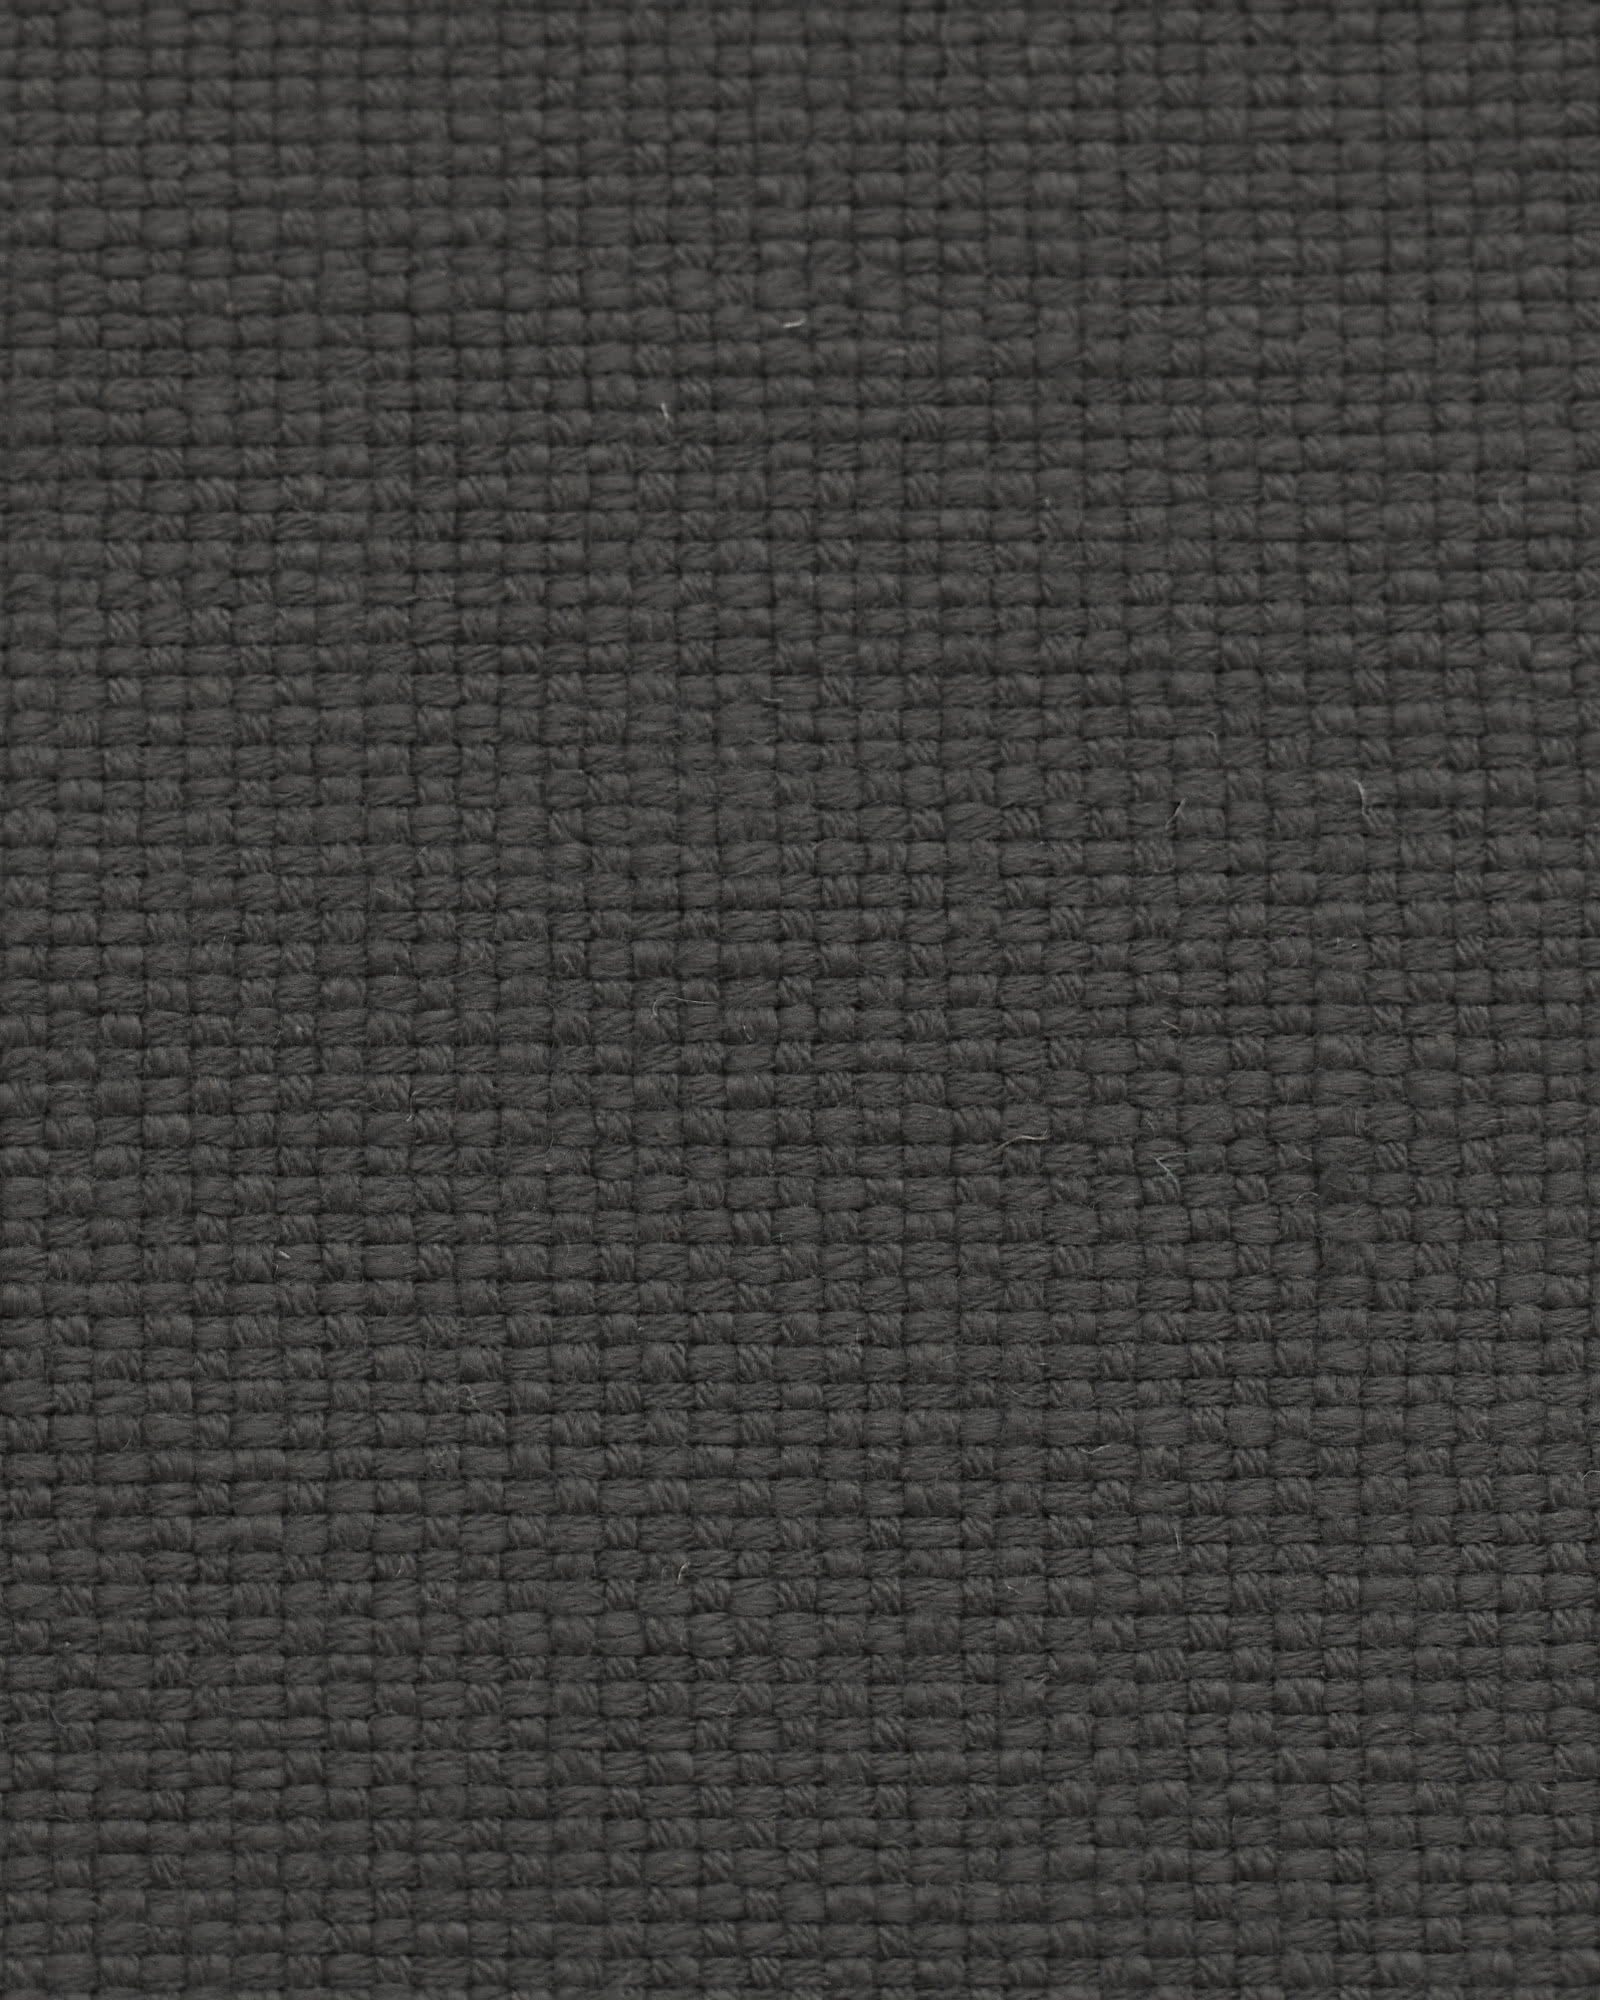 Fabric By the Yard - Basketweave Fabric,